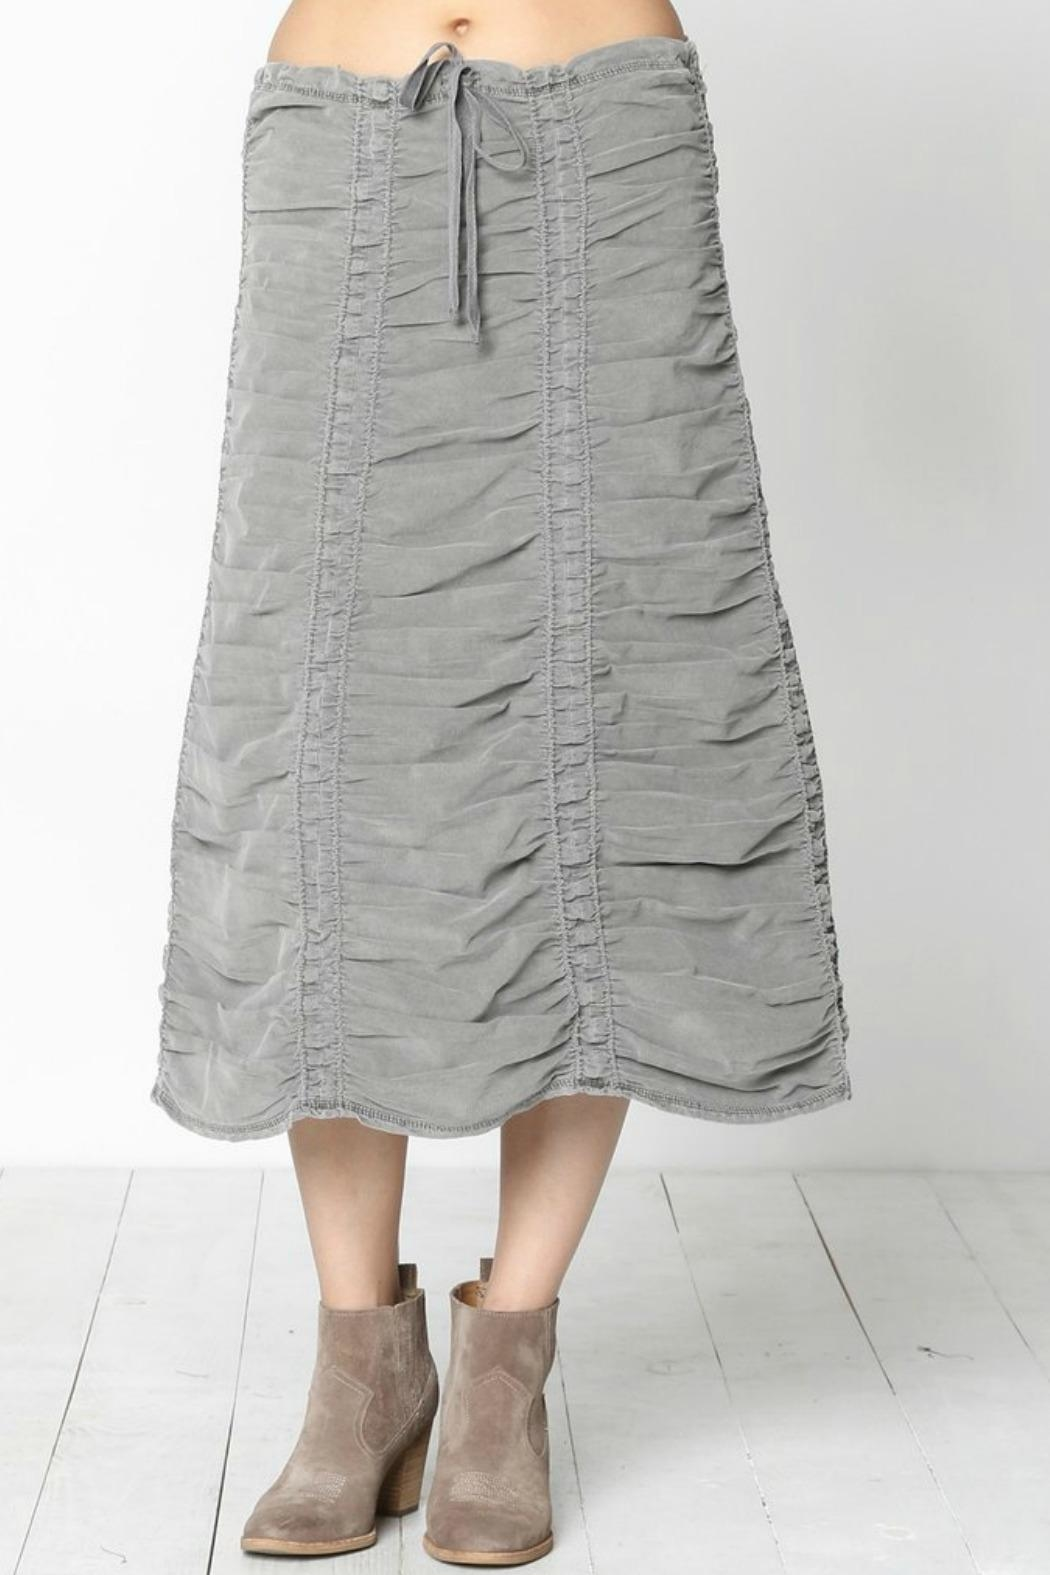 XCVI Wearables Ruched Corduroy Skirt - Main Image